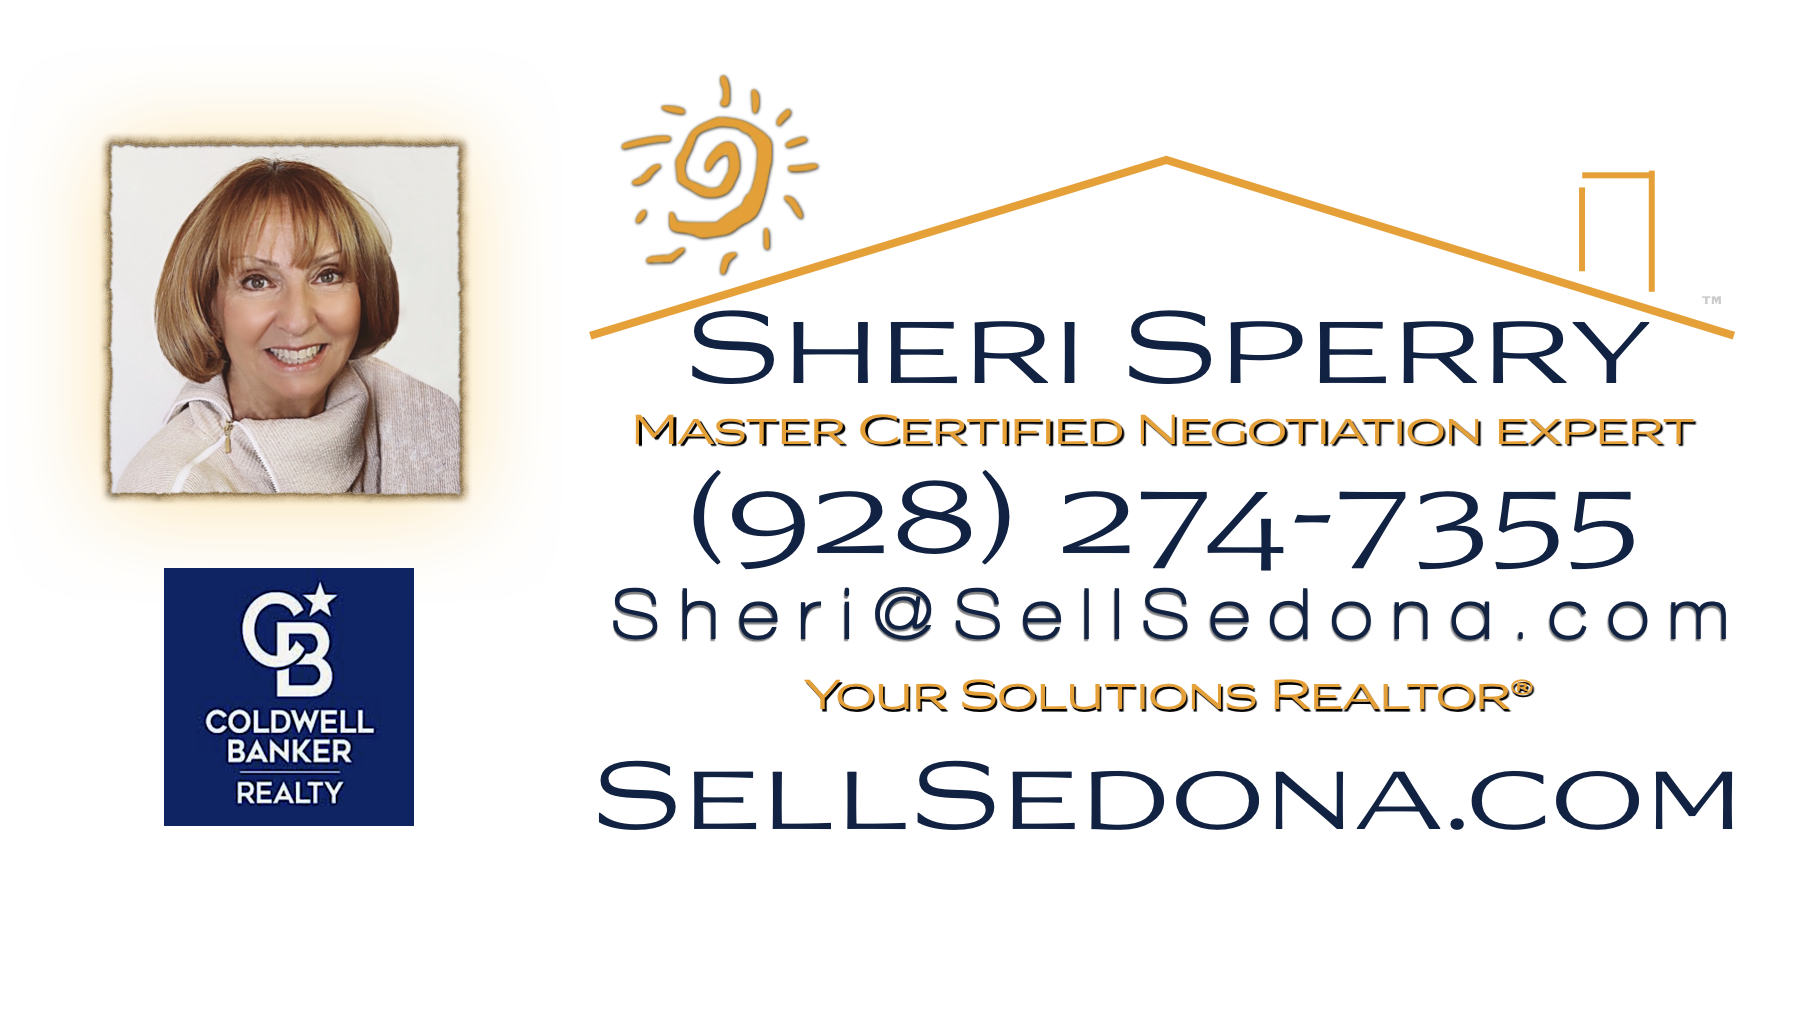 Sheri Sperry - Coldwell Banker Realty Sedona REALTOR®